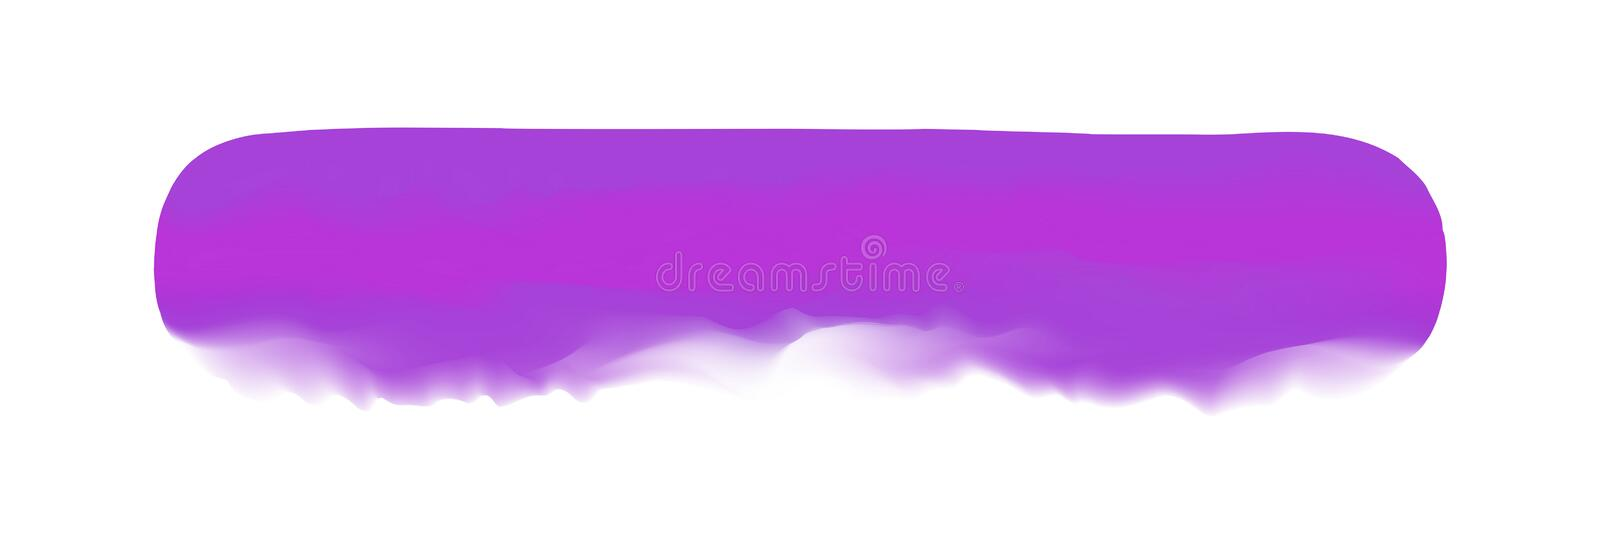 Purple stripe painted in watercolor on clean white background, purple watercolor brush strokes, illustration paint brush. The purple stripe painted in watercolor stock illustration